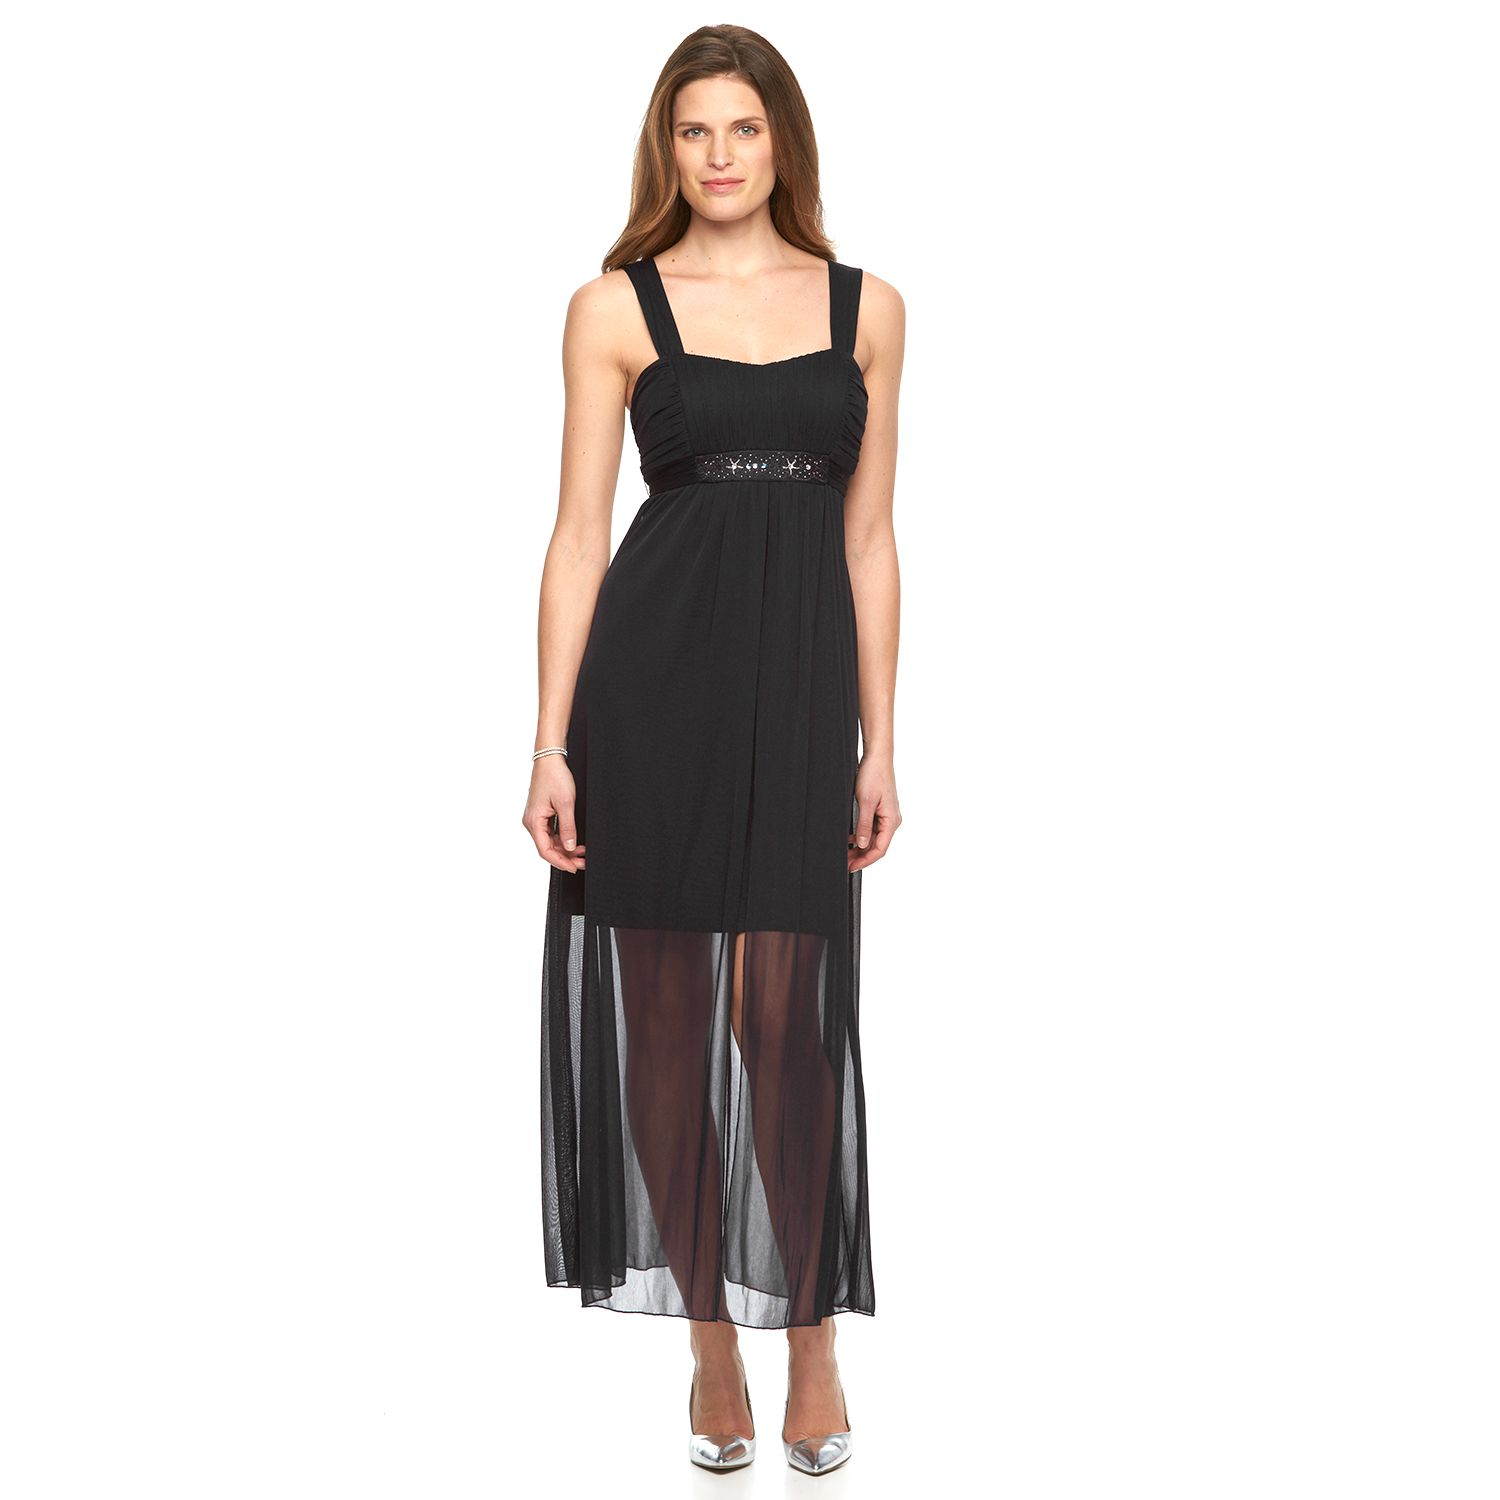 Womens Connected Apparel Chiffon Maxi Dress